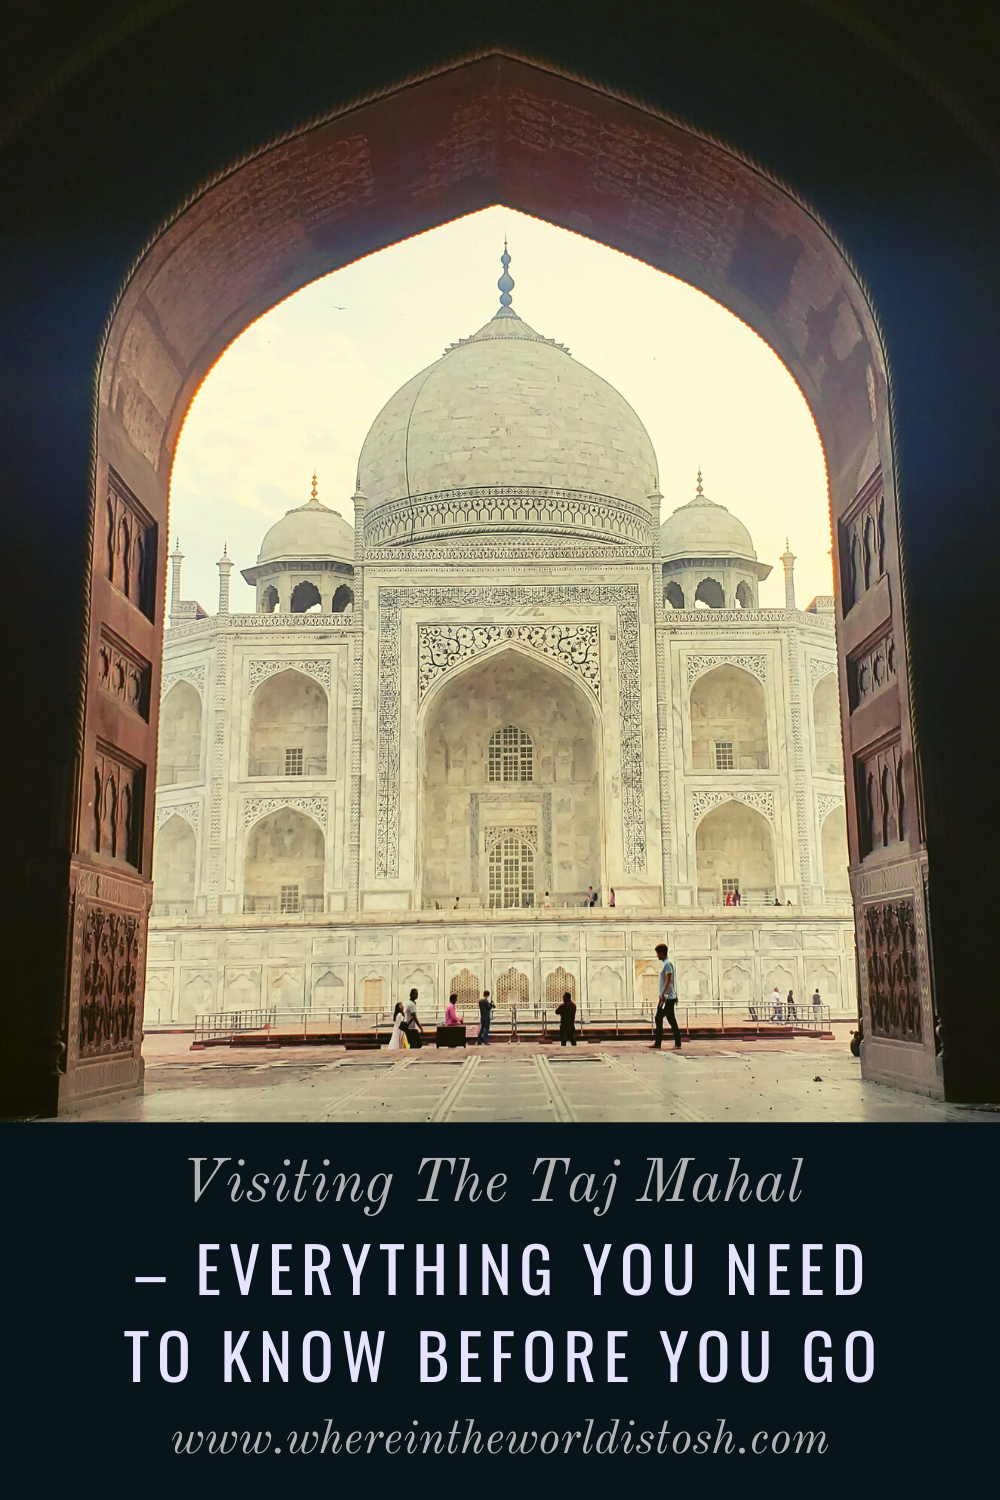 Visiting The Taj Mahal Everything You Need To Know Before You Go